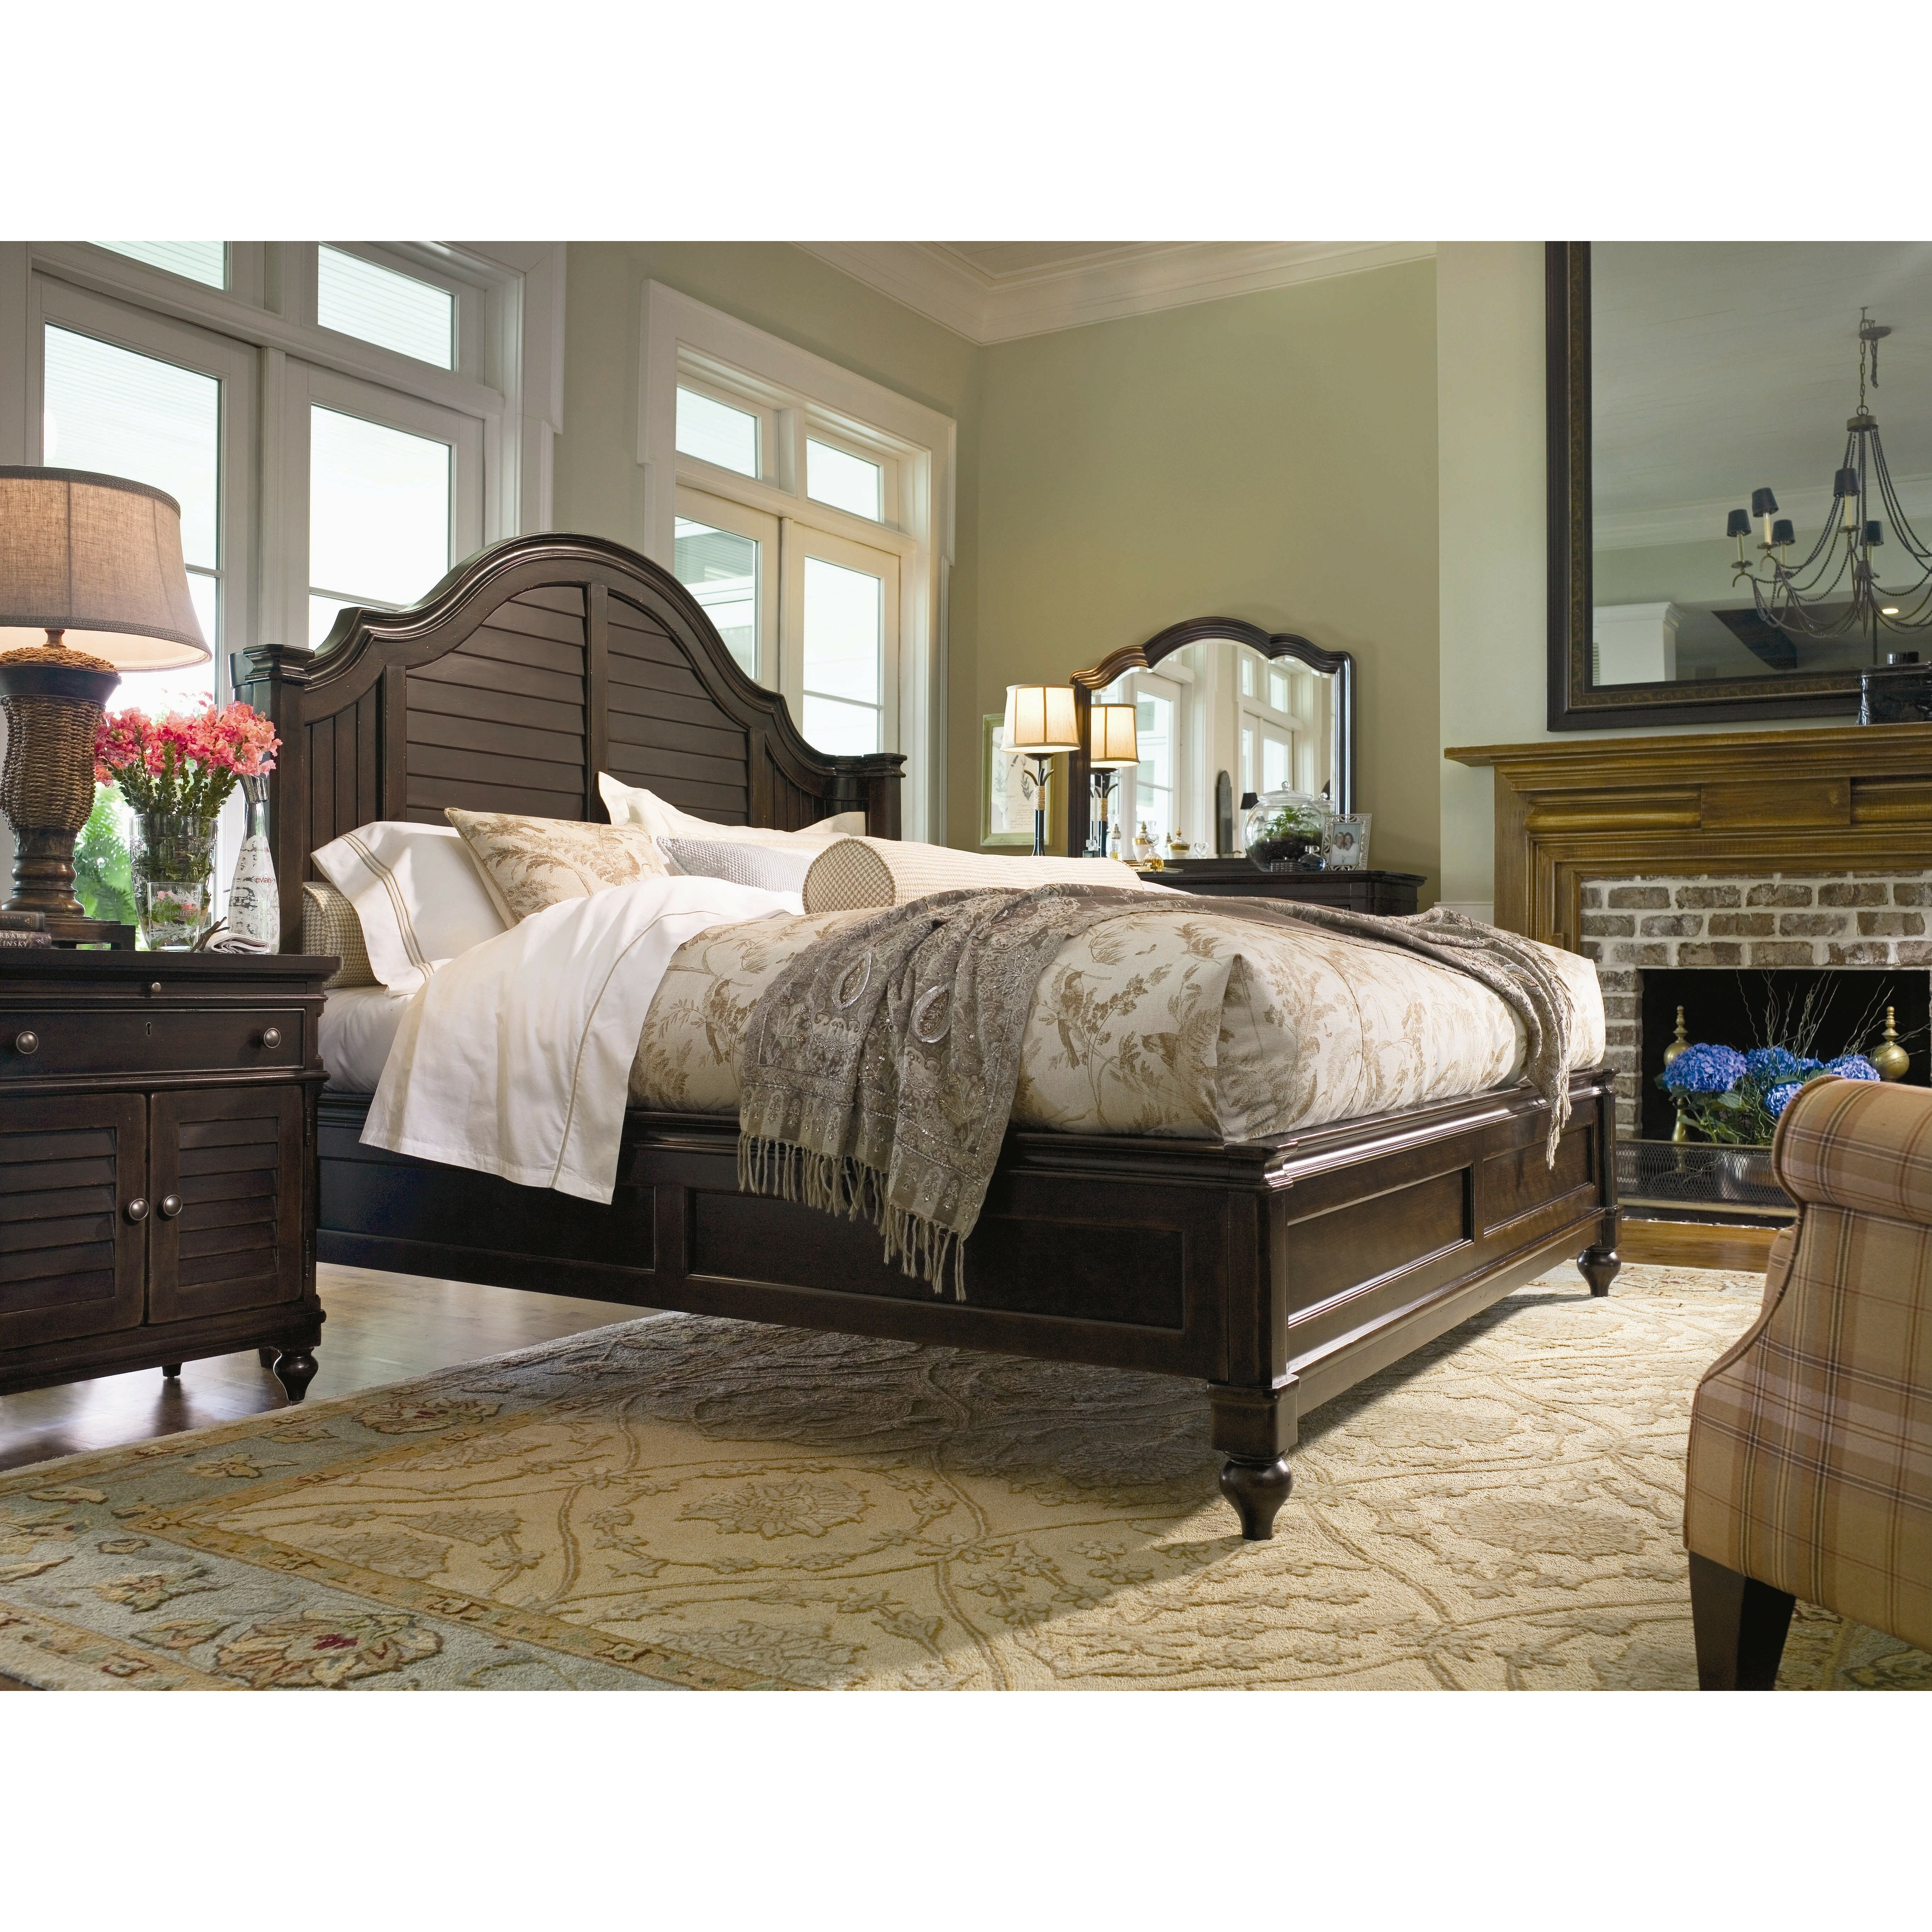 Paula Deen Bedroom Furniture Collection Steel Magnolia Paula Deen Home Steel Magnolia Panel Customizable Bedroom Set